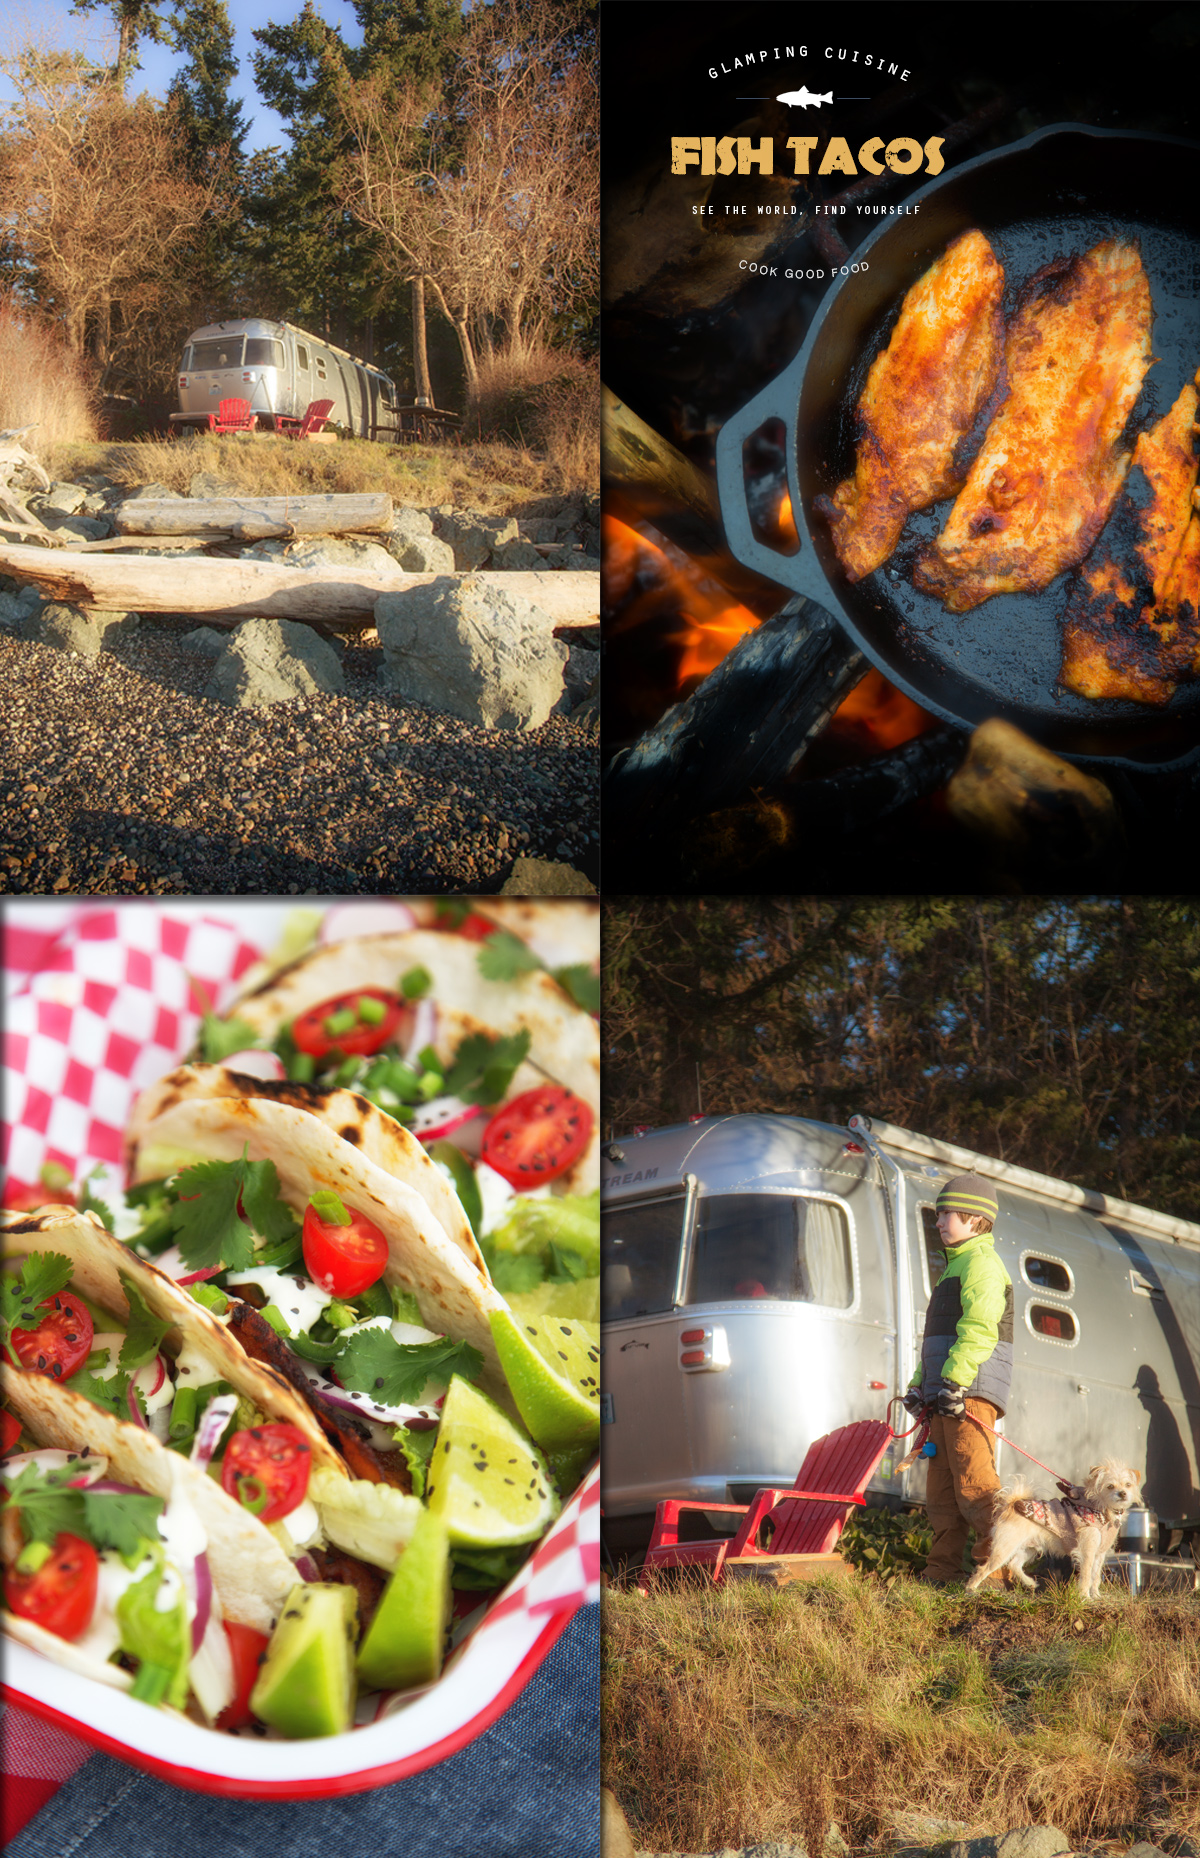 Glamping Cuisine Airstream Style via J5MM.com